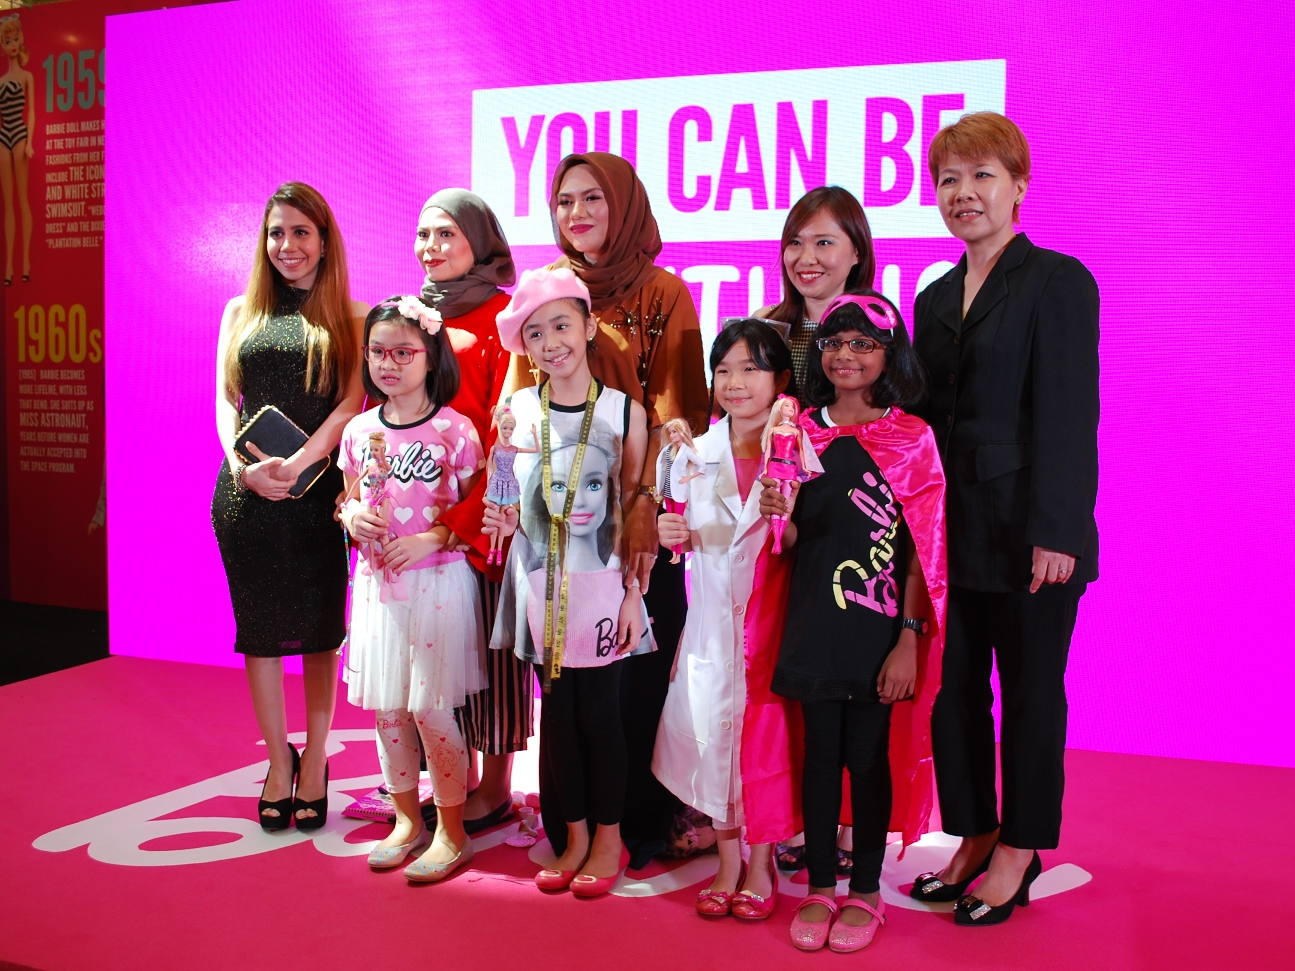 Youcanbeanything Mattell To Hold Barbie Doll Exhibition Features Katalog Berbie Baju A Display Of Over 200 Dolls